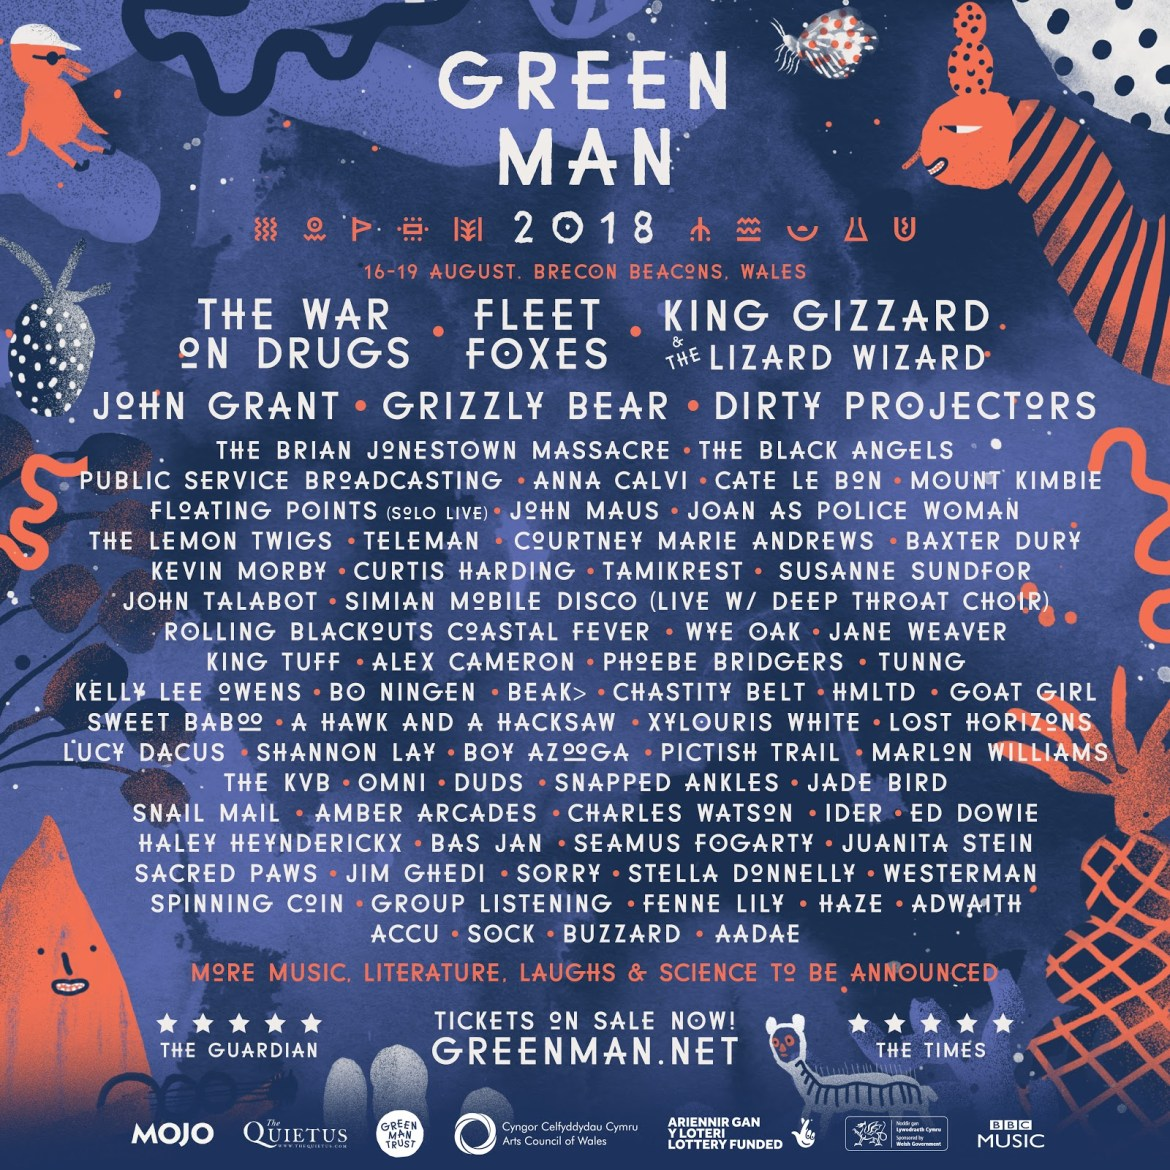 NEWS: King Gizzard and the Lizard Wizard, Cate Le Bon, Anna Calvi, Floating Points amongst second wave of names for Green Man